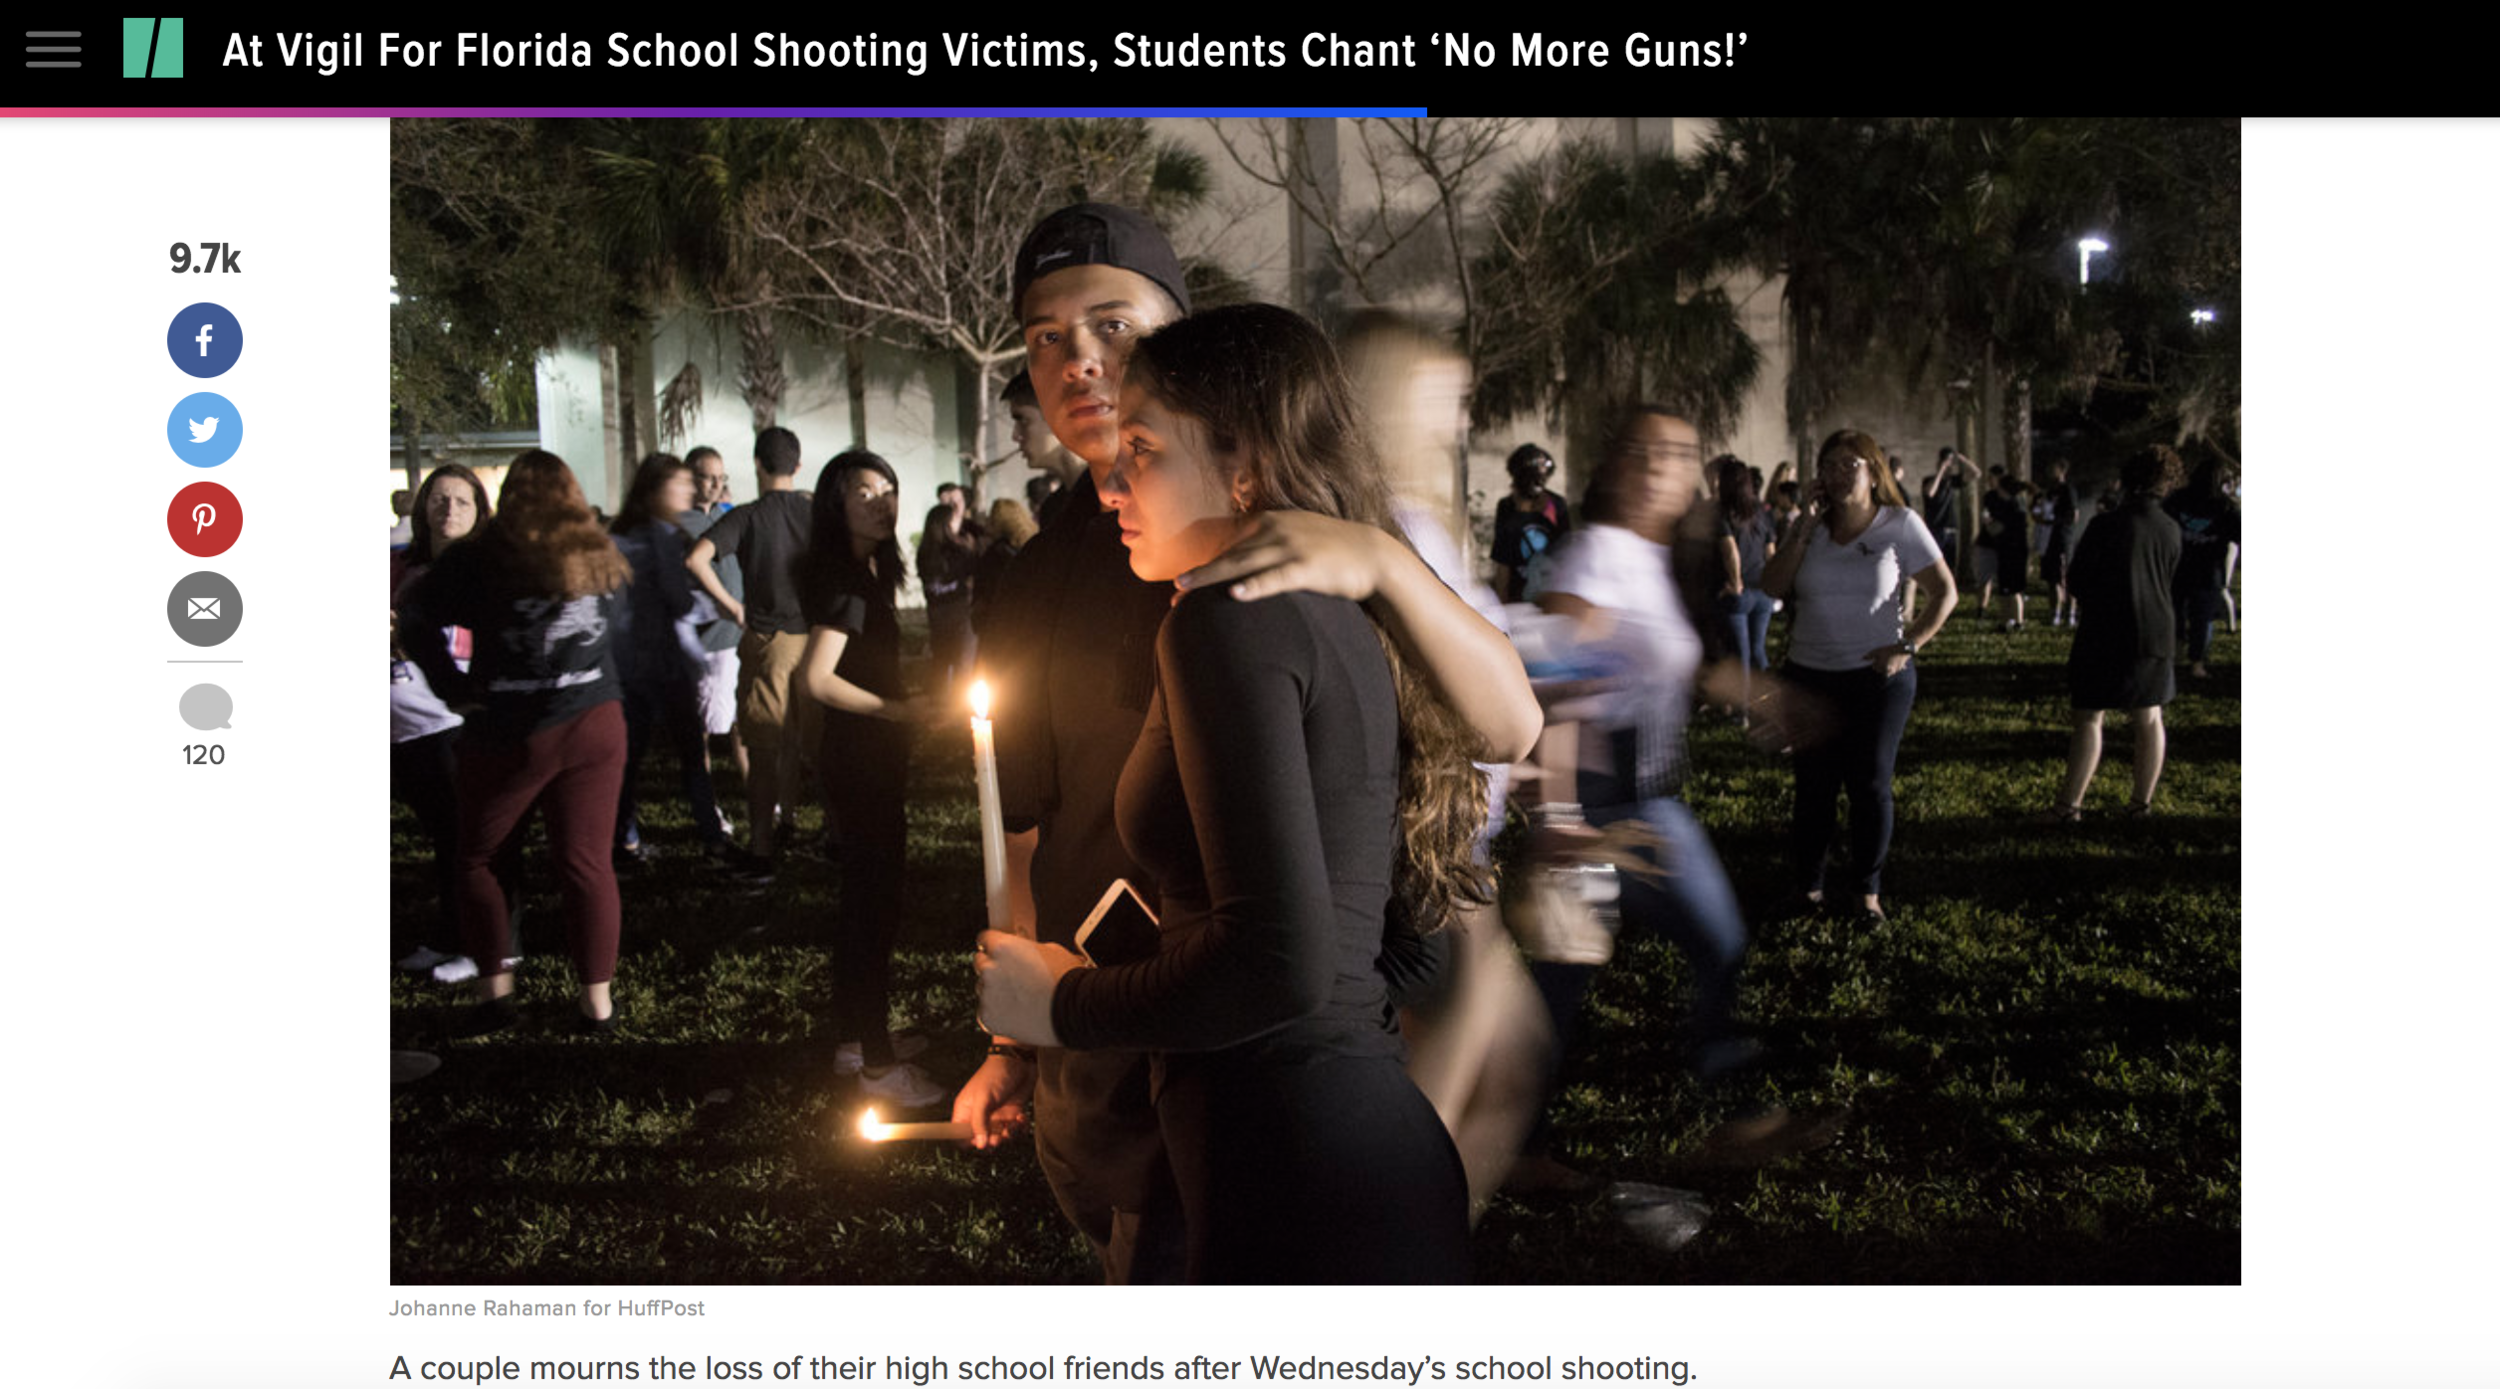 Photographs in context on HuffPost